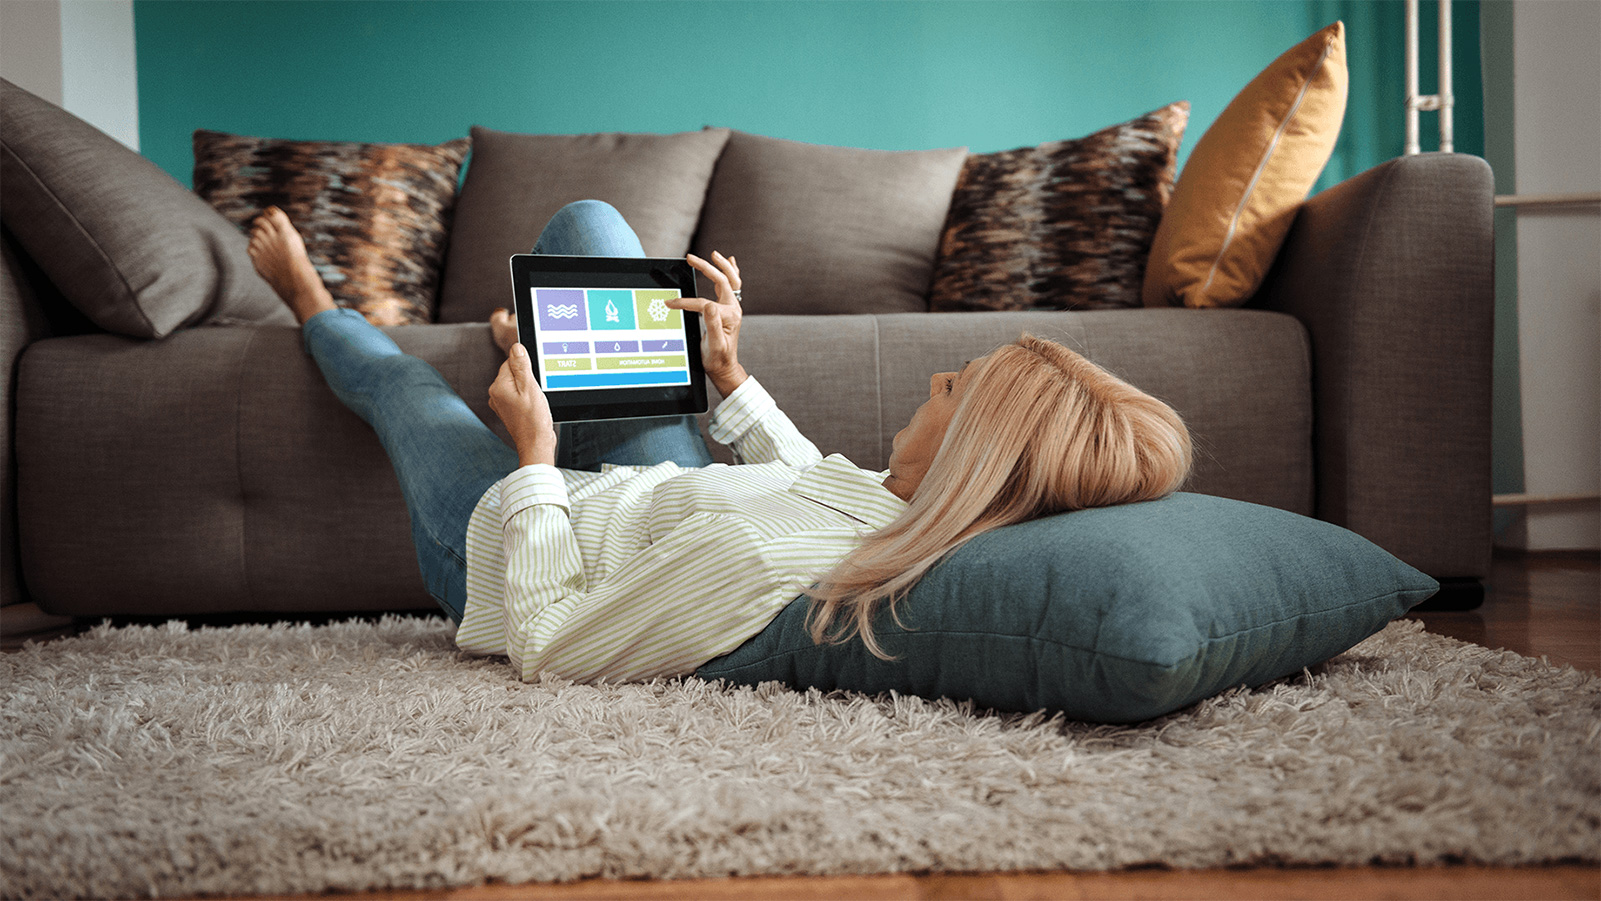 Woman relaxing on her living room floor and using her tablet.